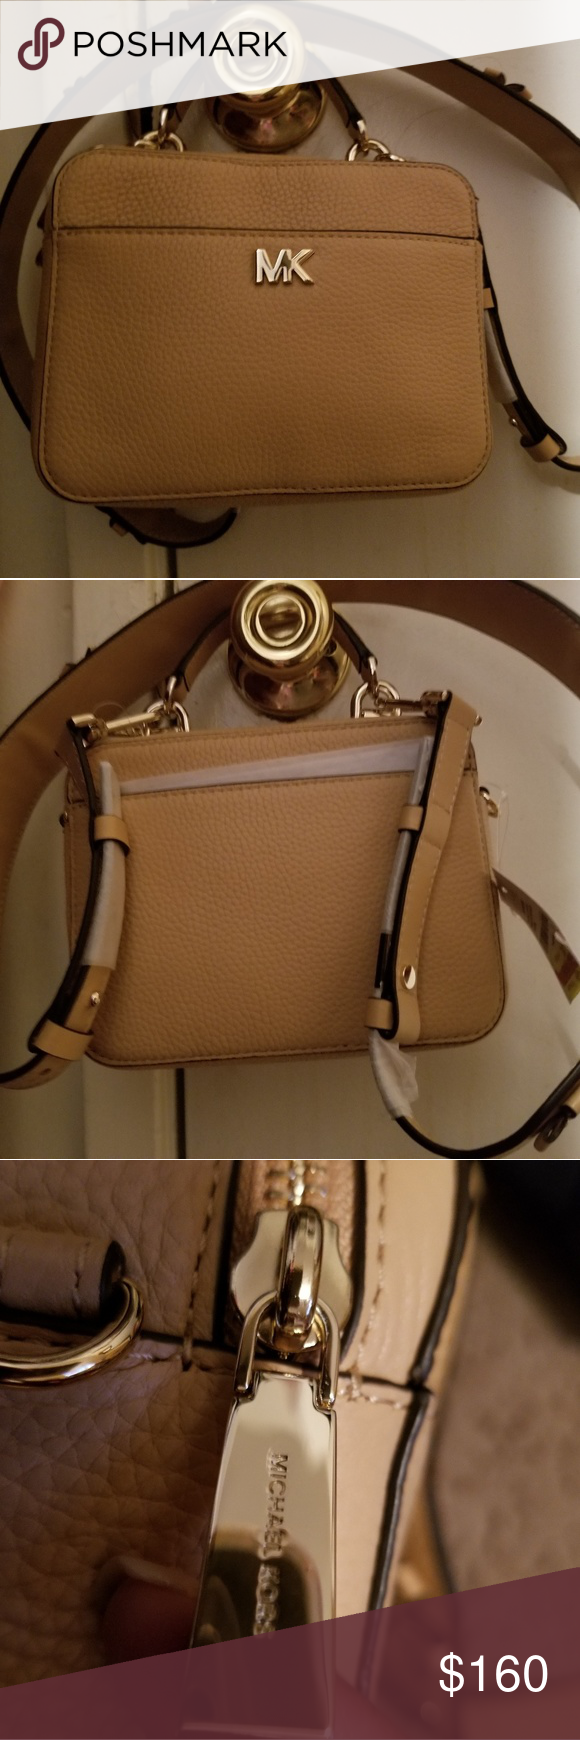 facf12039d54 NWT Michael Kors Mini Guitar Strap Crossbody  100% Authentic Brand New With  Tags Michael